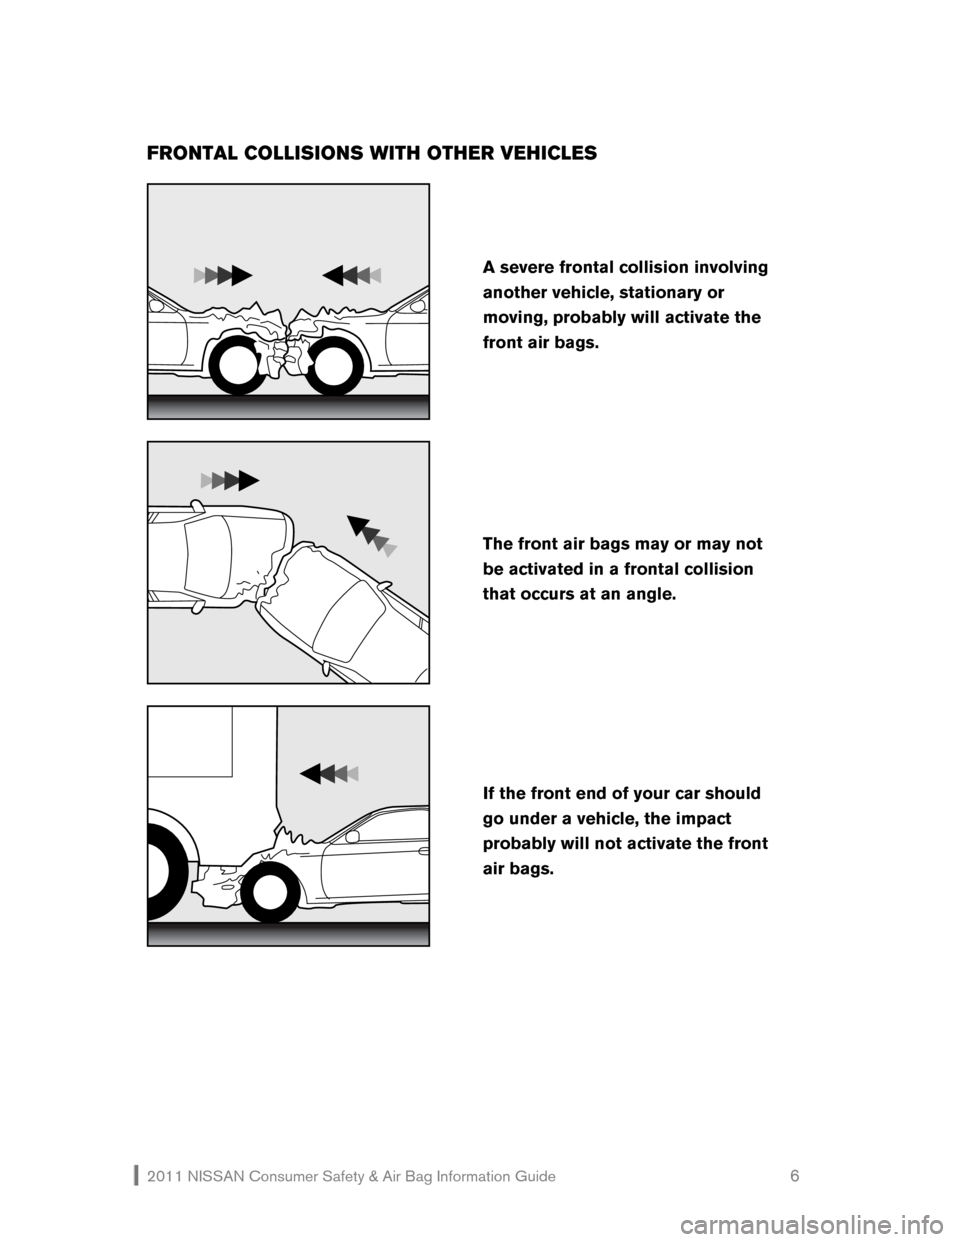 NISSAN ROGUE 2011 1.G Consumer Safety Air Bag Information Guide 2011 NISSAN Consumer Safety & Air Bag Information Guide                                                       6  FRONTAL COLLISIONS WITH OTHER VEHICLES          If the front end of your car should  go